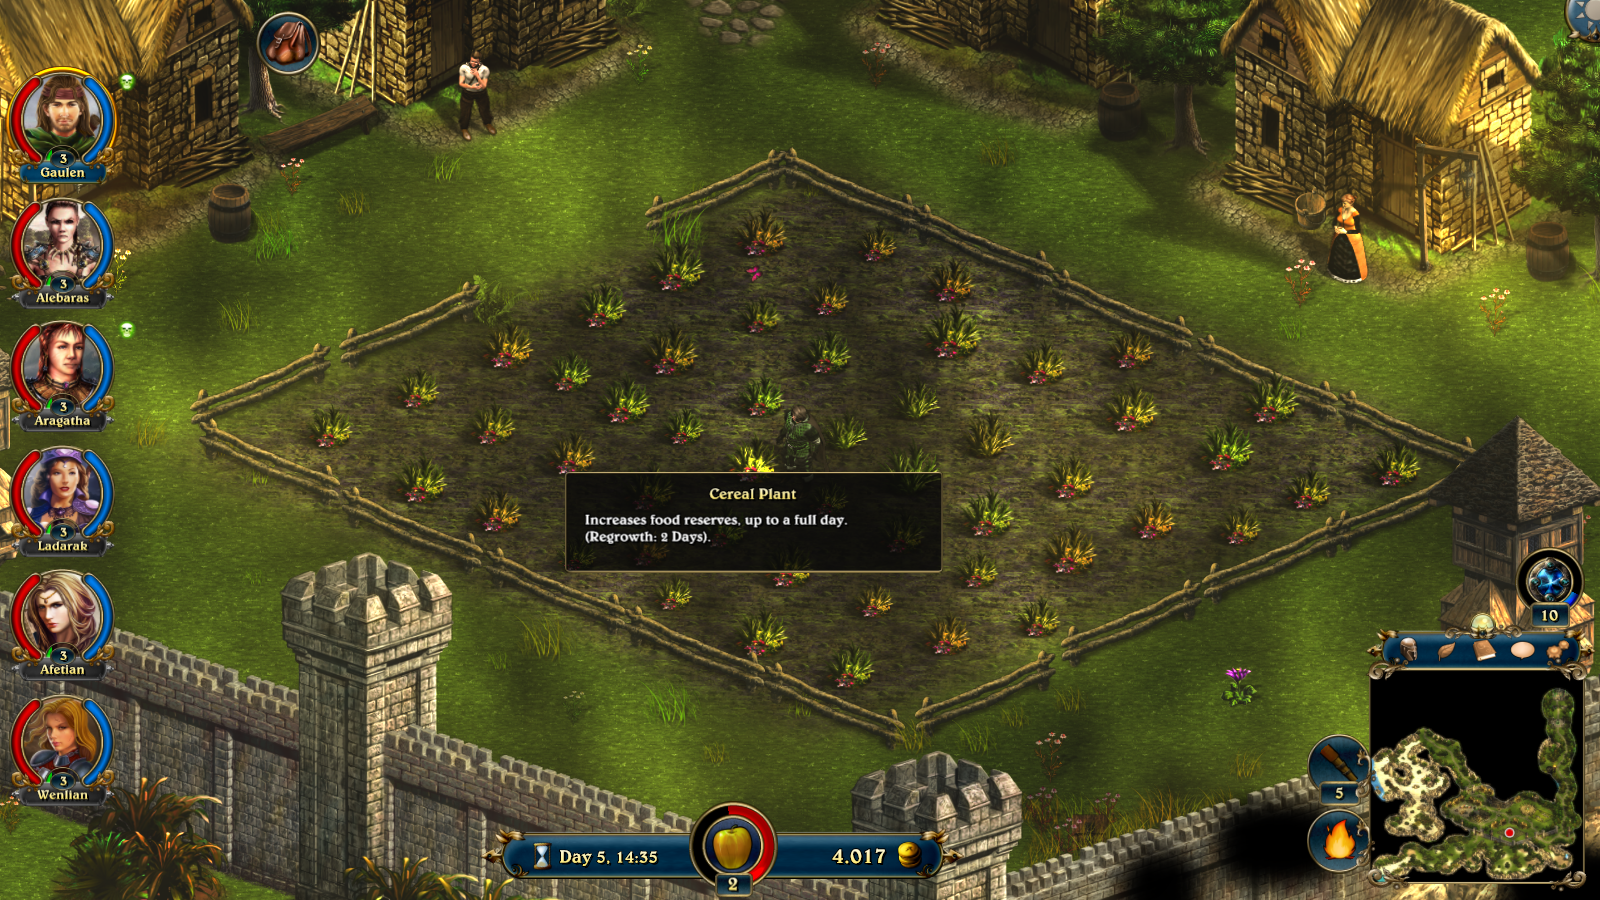 Cereal plant field in Lords of Xulima.